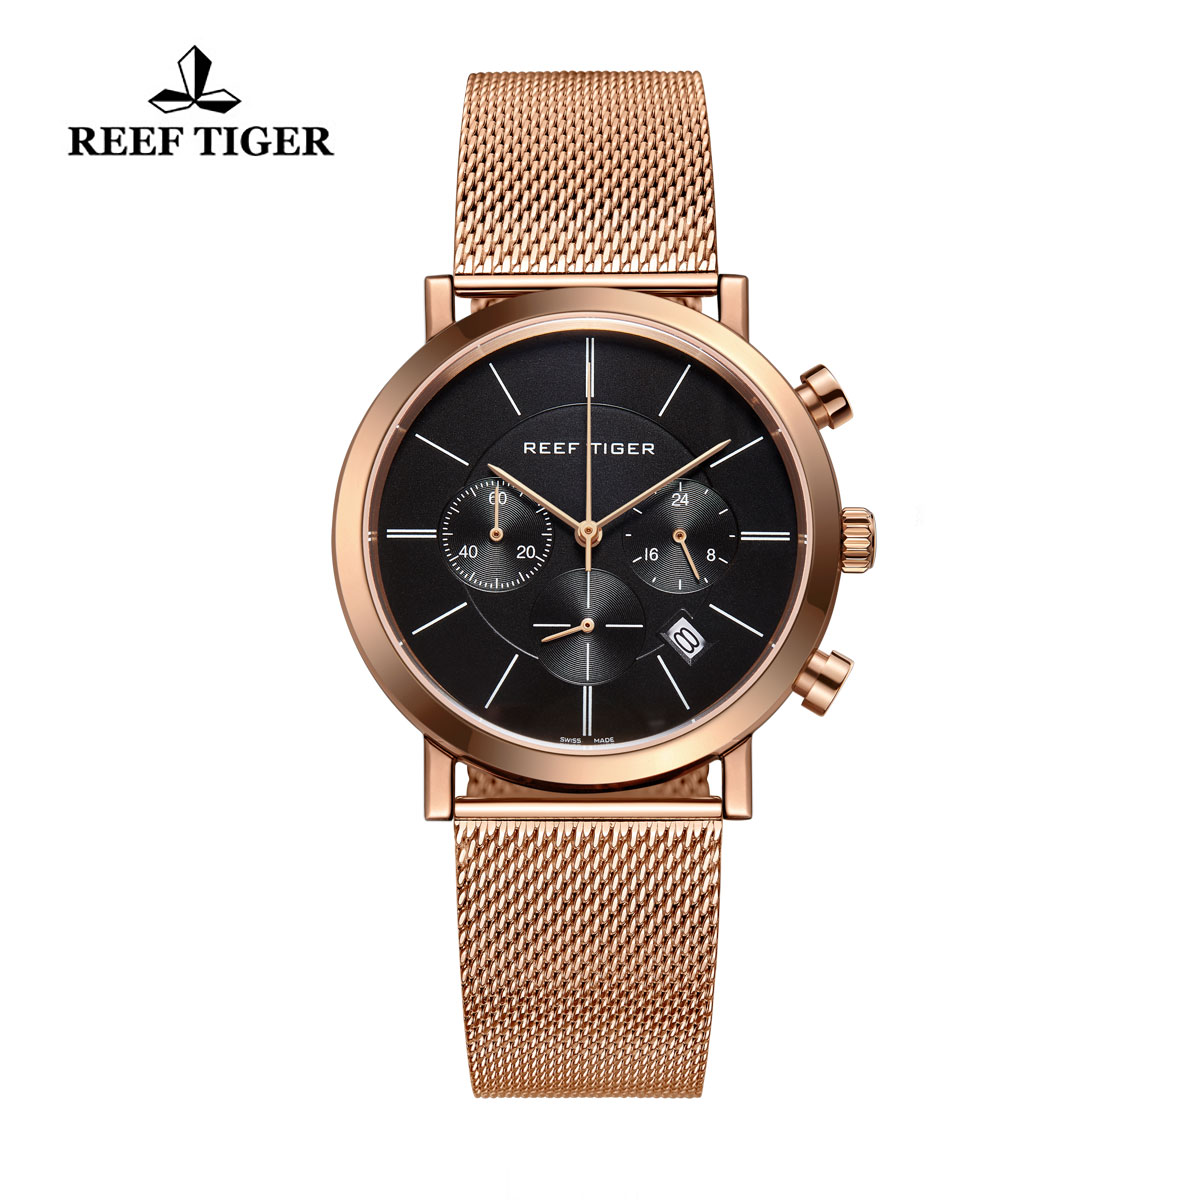 Reef Tiger Business Watch Ultra Thin Rose Gold Black Dial Chronograph Quartz Watch RGA162-PBP